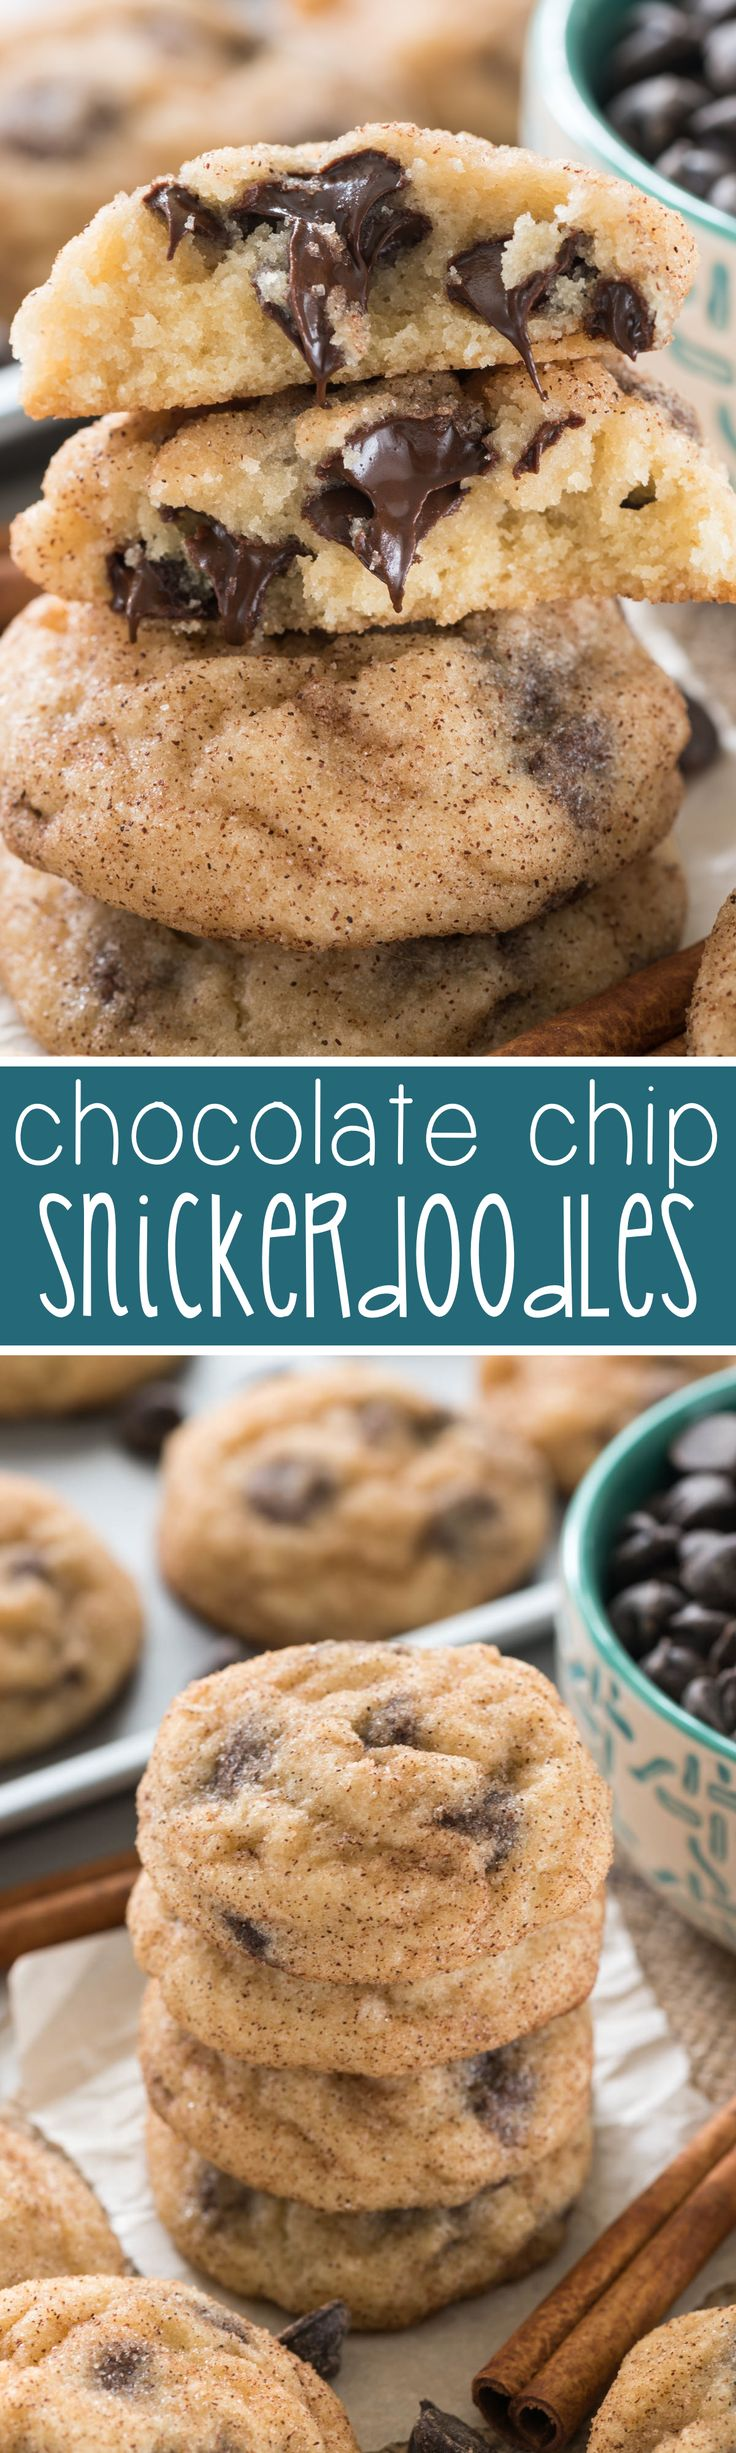 Chocolate Chip Snickerdoodles - this easy snickerdoodle recipe is FILLED with chocolate chips. We made these twice in two days! Chocolate goes so well with snickerdoodle cookies!